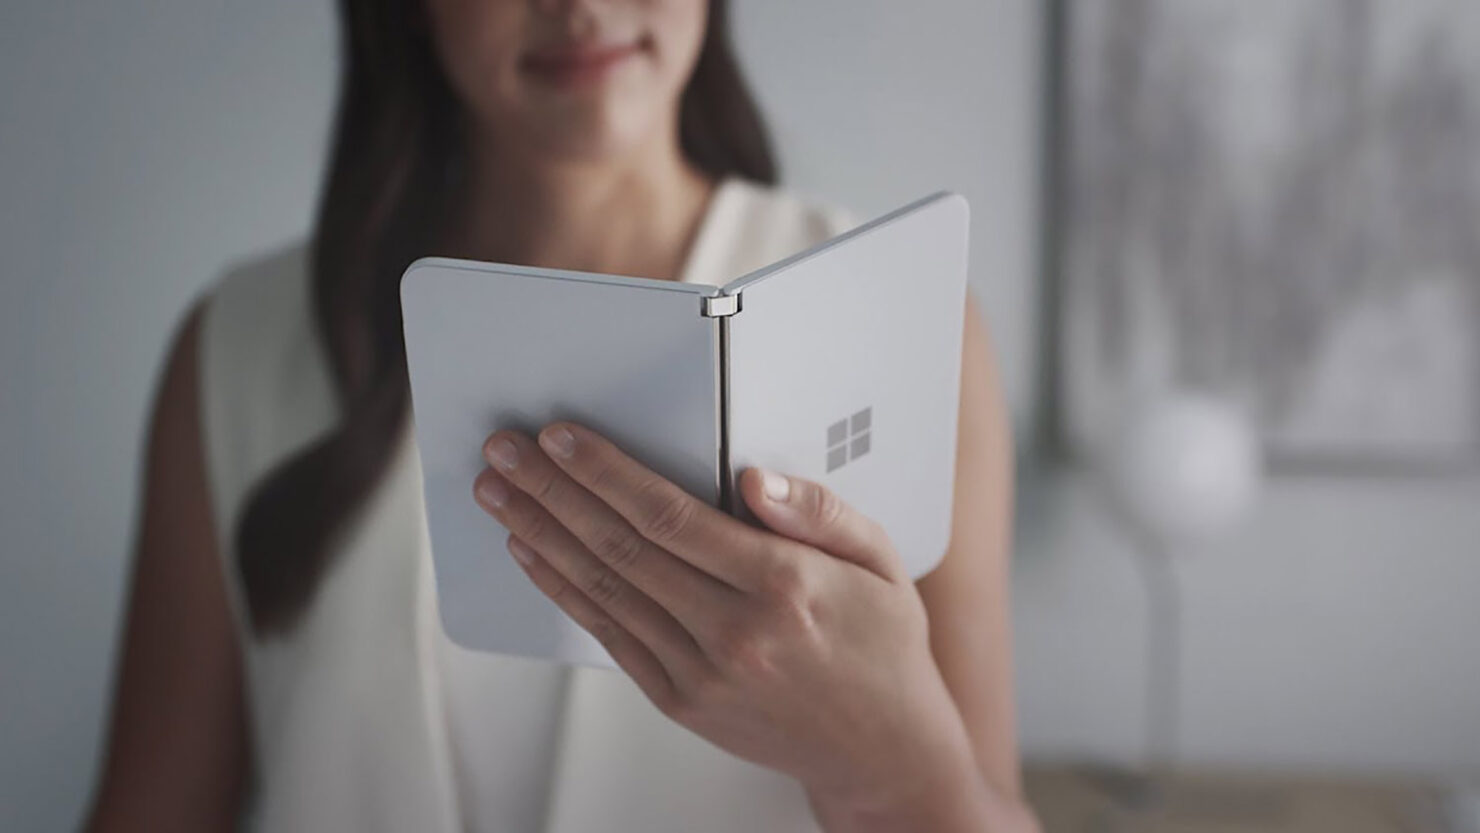 Microsoft Explains the Surface Duo Lacks NFC Because Company Wanted to Focus on 'Fundamental Scenarios That Solve Customer Challenges'